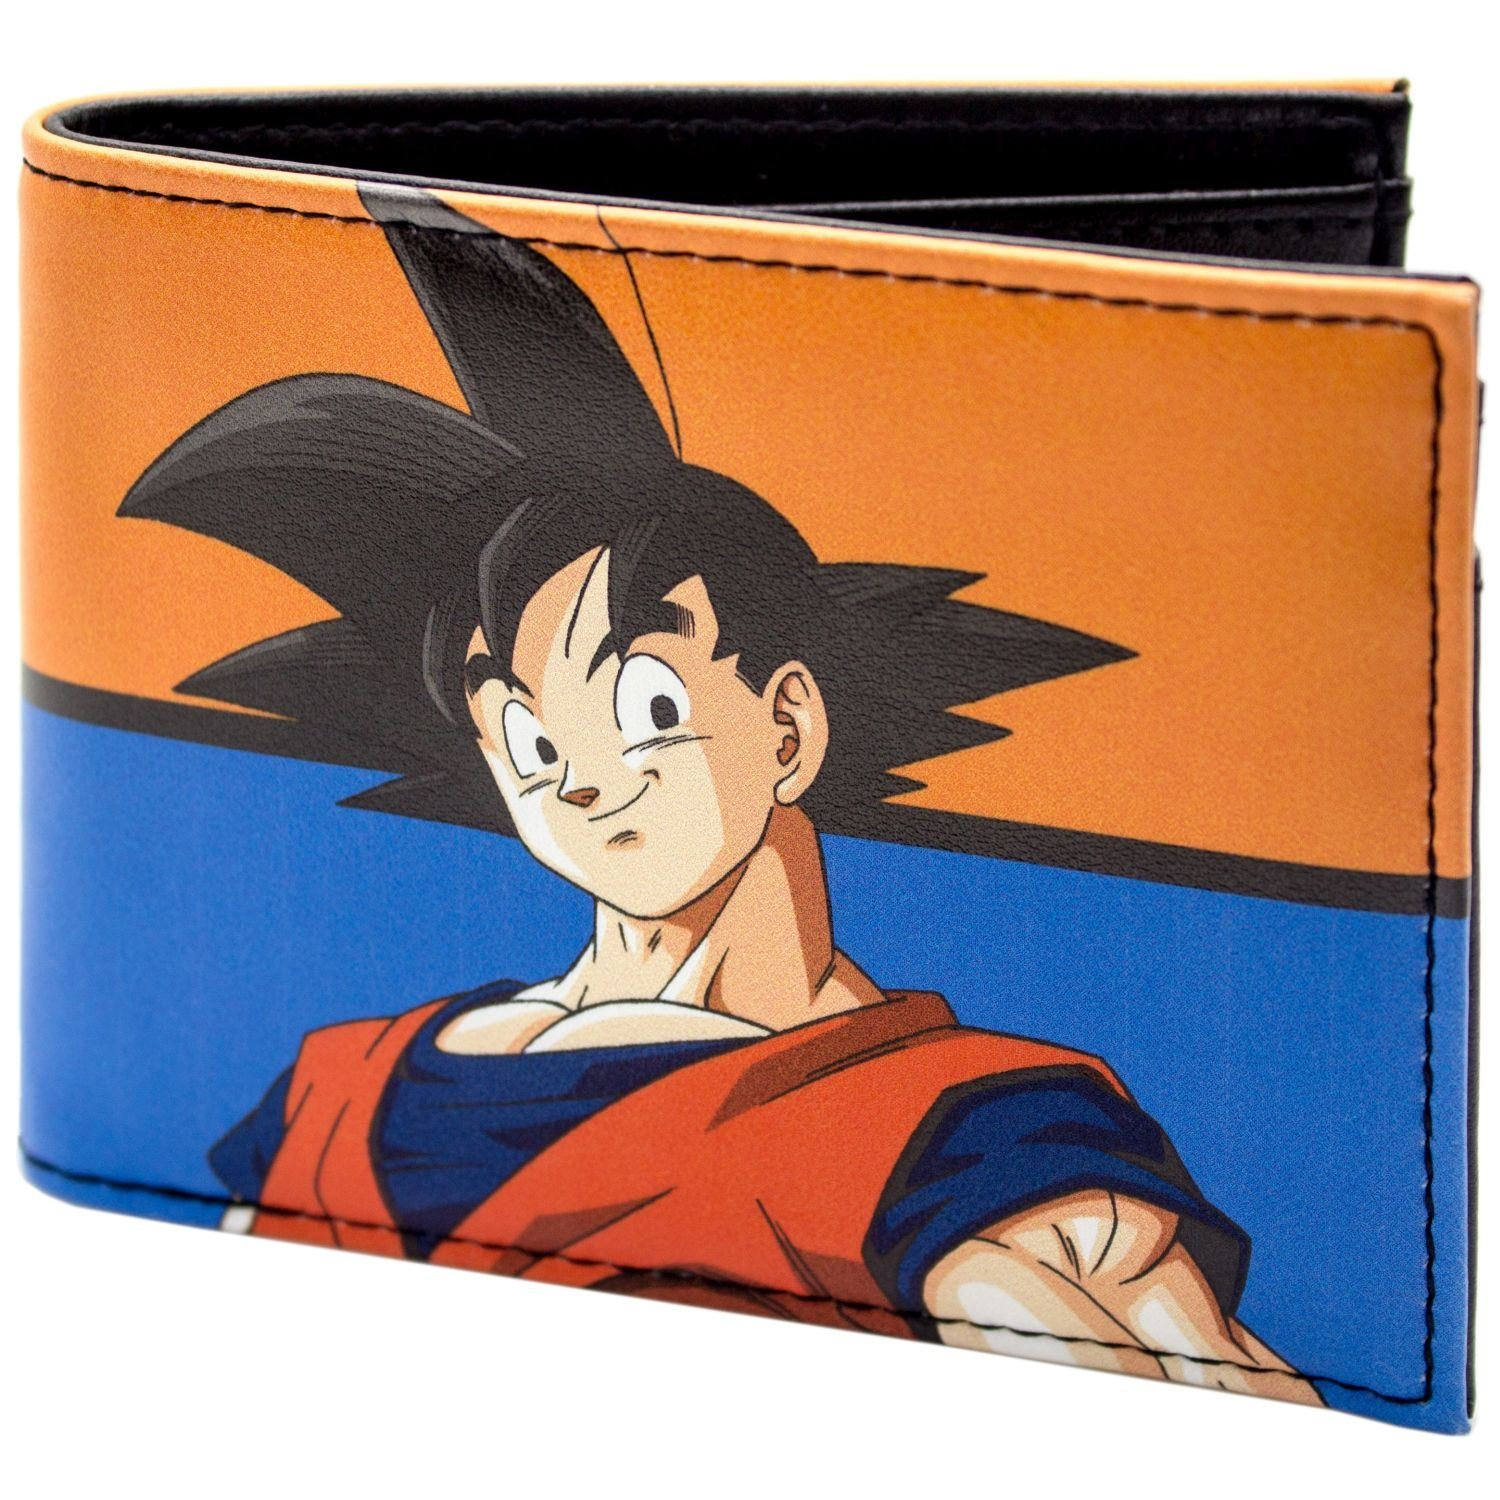 Cartera de Dragon Ball Z Goku Luchador Guerrero Azul: Amazon.es: Equipaje